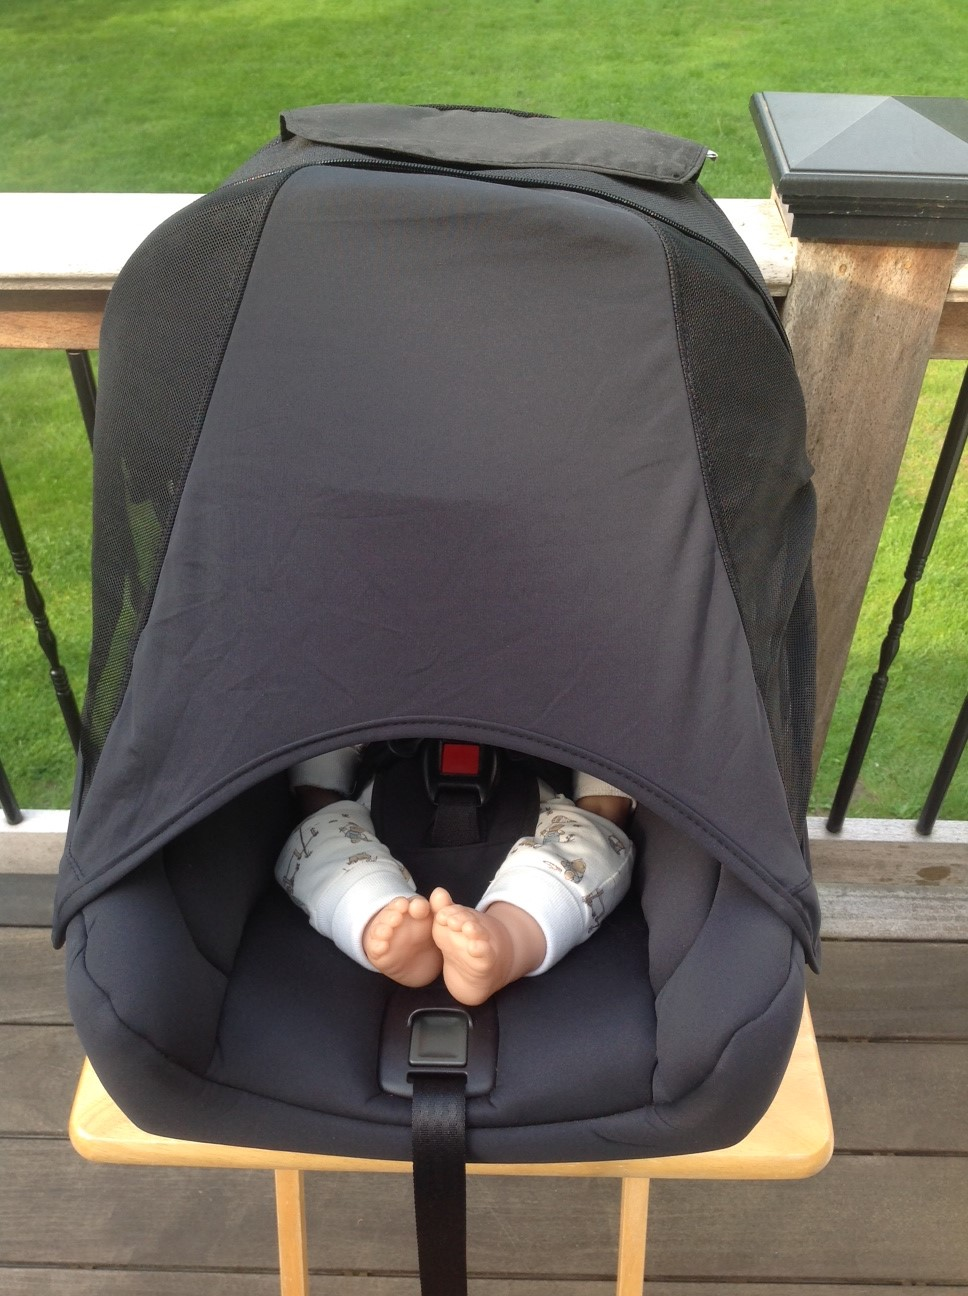 Infant Carrier Seat >> CarseatBlog: The Most Trusted Source for Car Seat Reviews ...